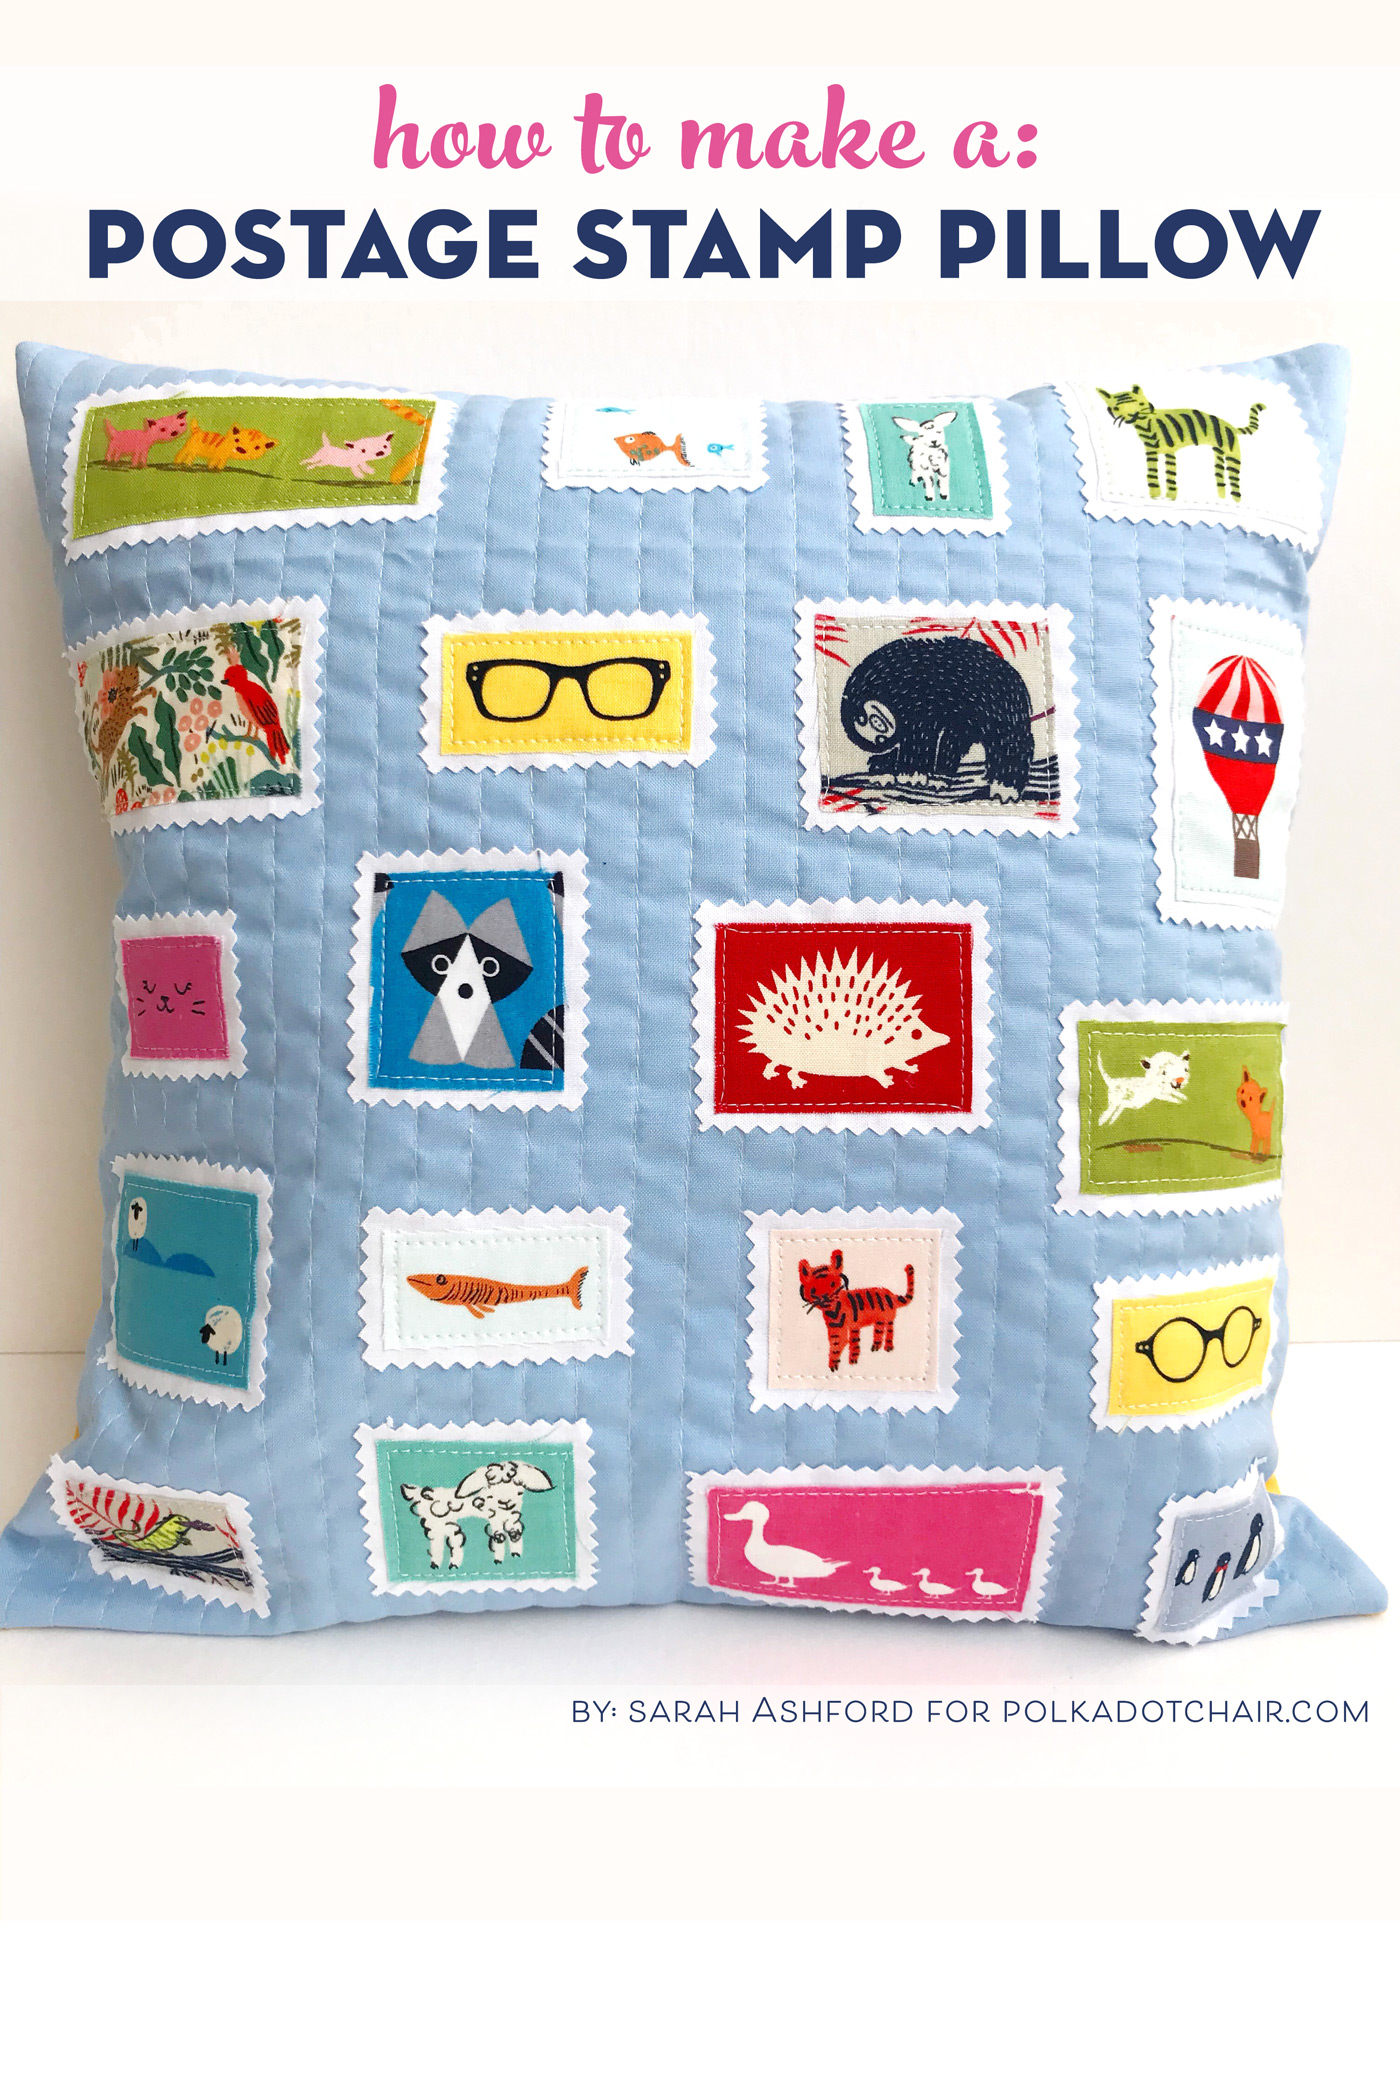 Postage Stamp Pillow from Polkadot Chair